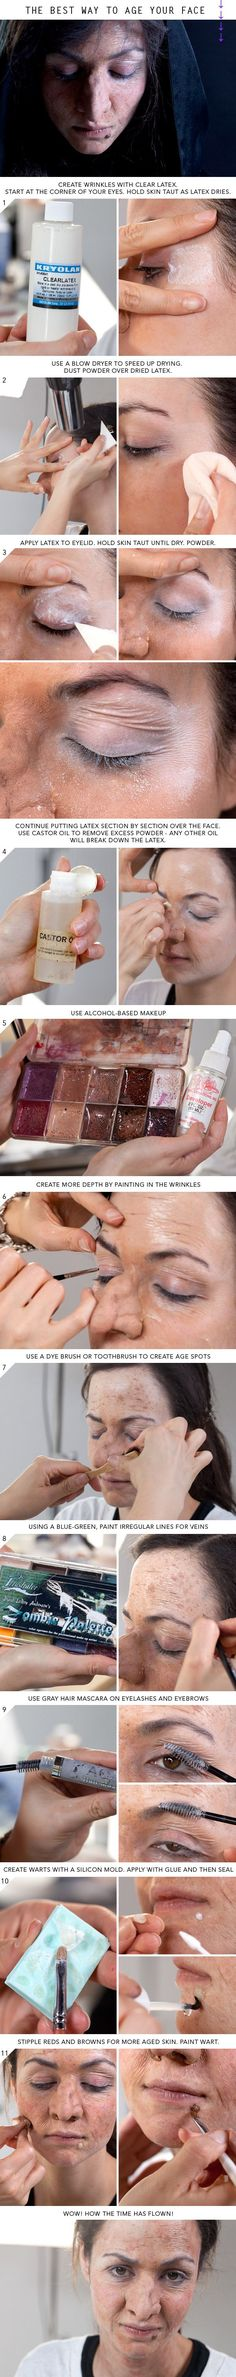 Great way to create wrinkles without having to use many products also much quicker way- will definitely be using this technique.